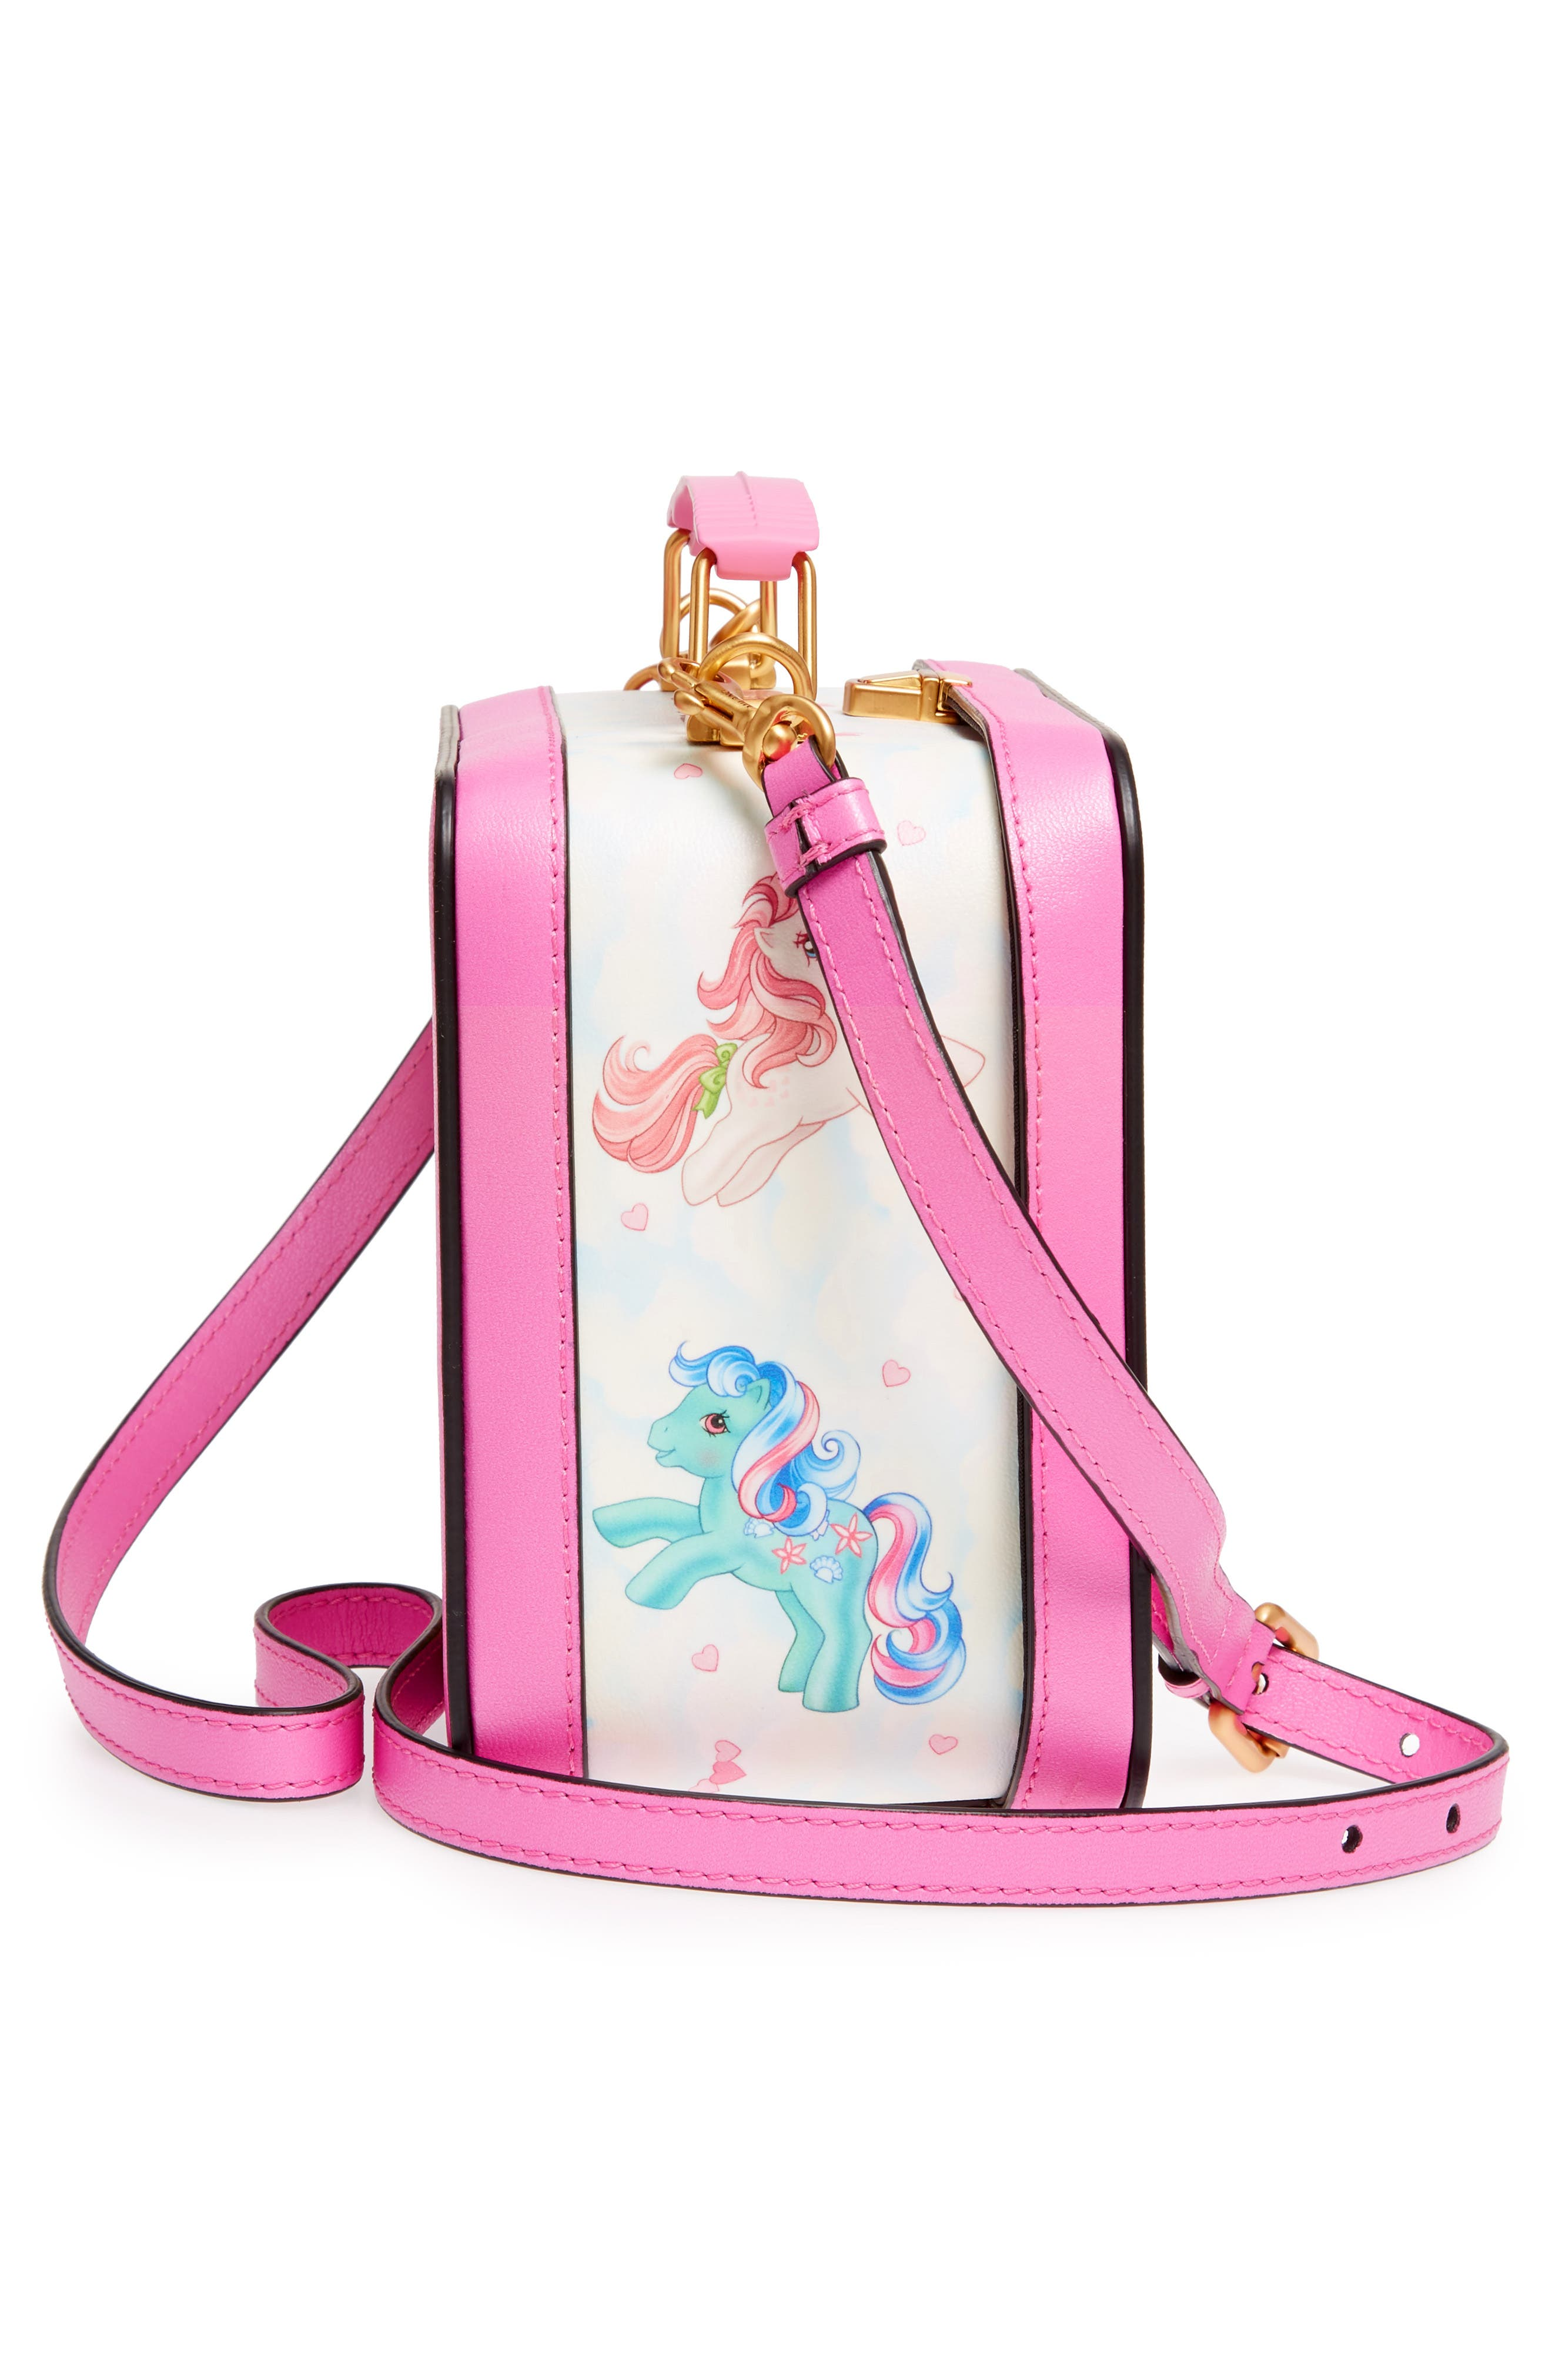 x My Little Pony Leather Lunch Box,                             Alternate thumbnail 5, color,                             Pink